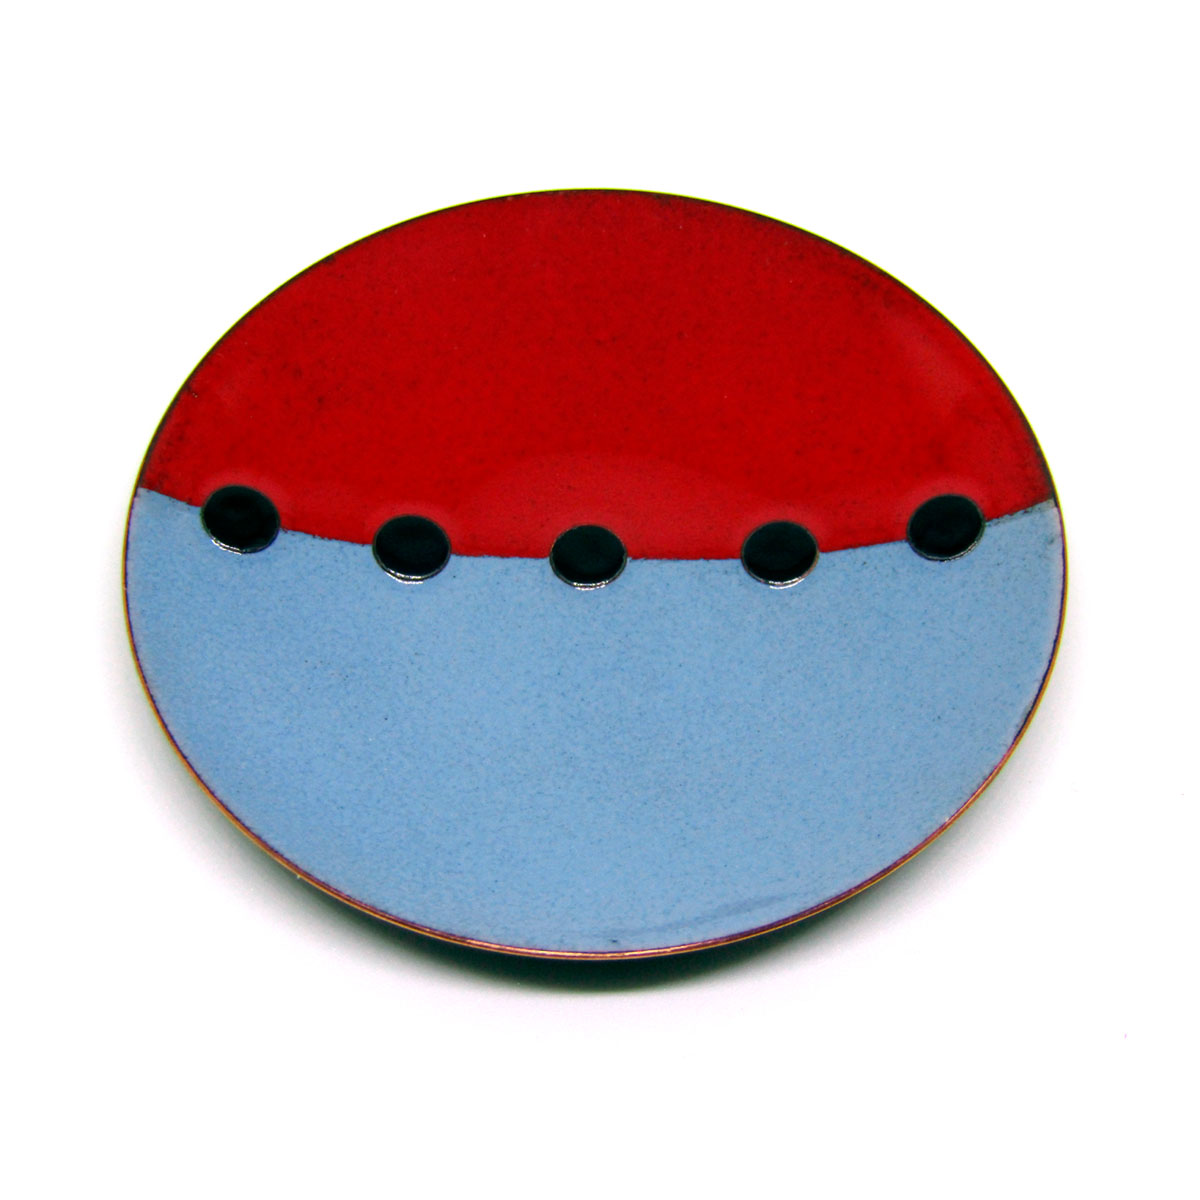 MCA131, Tricolour Red Grey Black Dish